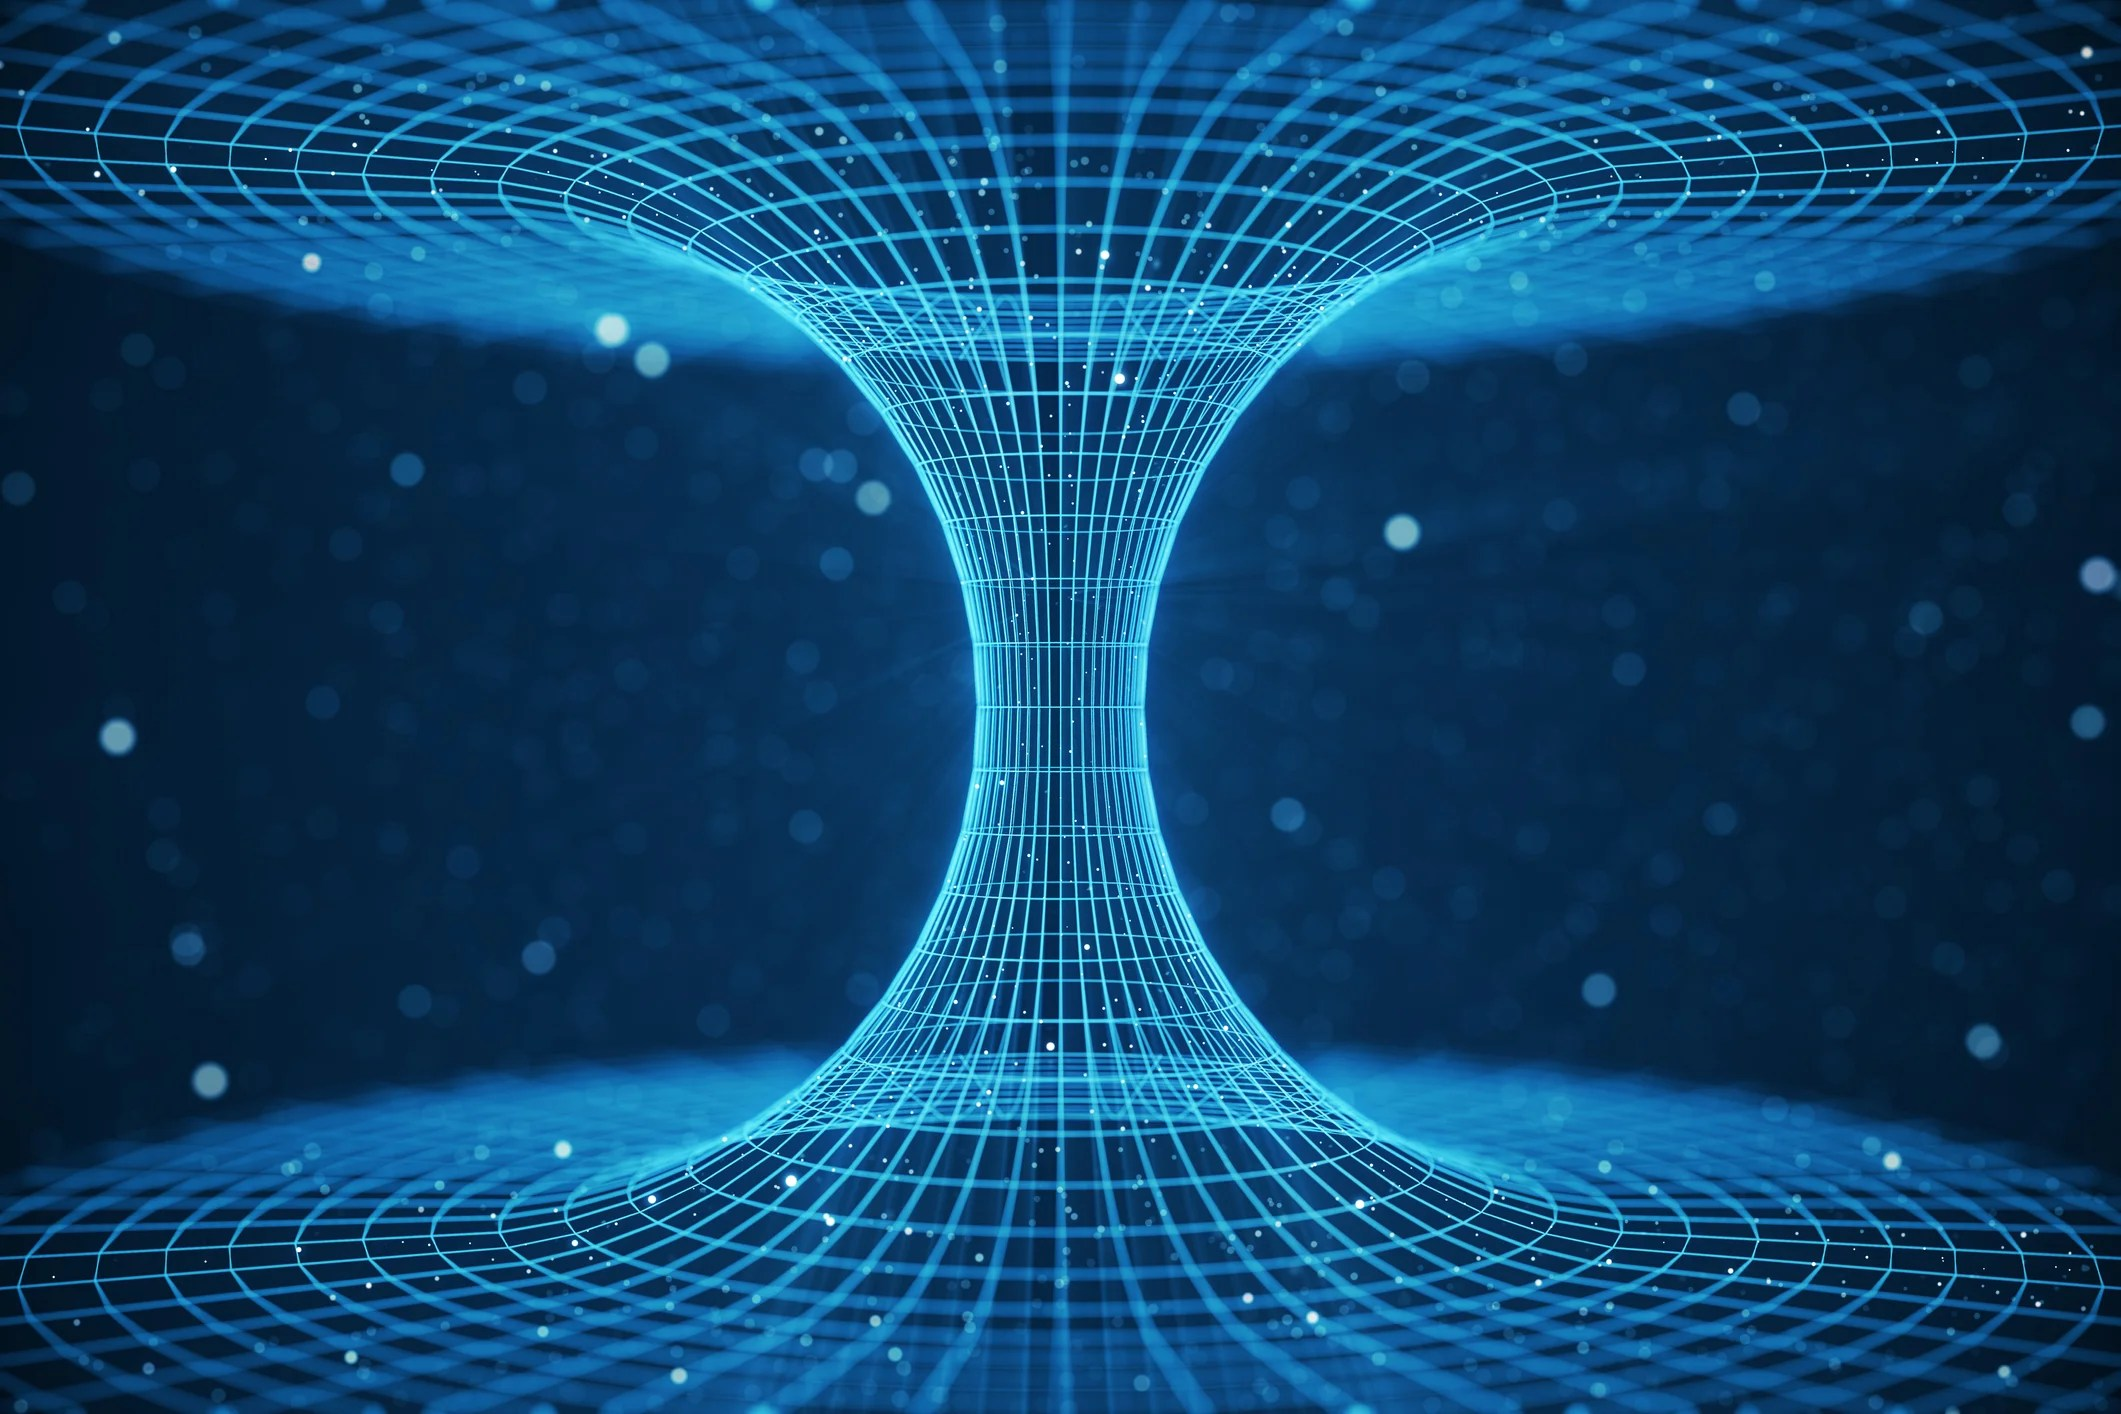 Wormholes in fiction - Wikipedia